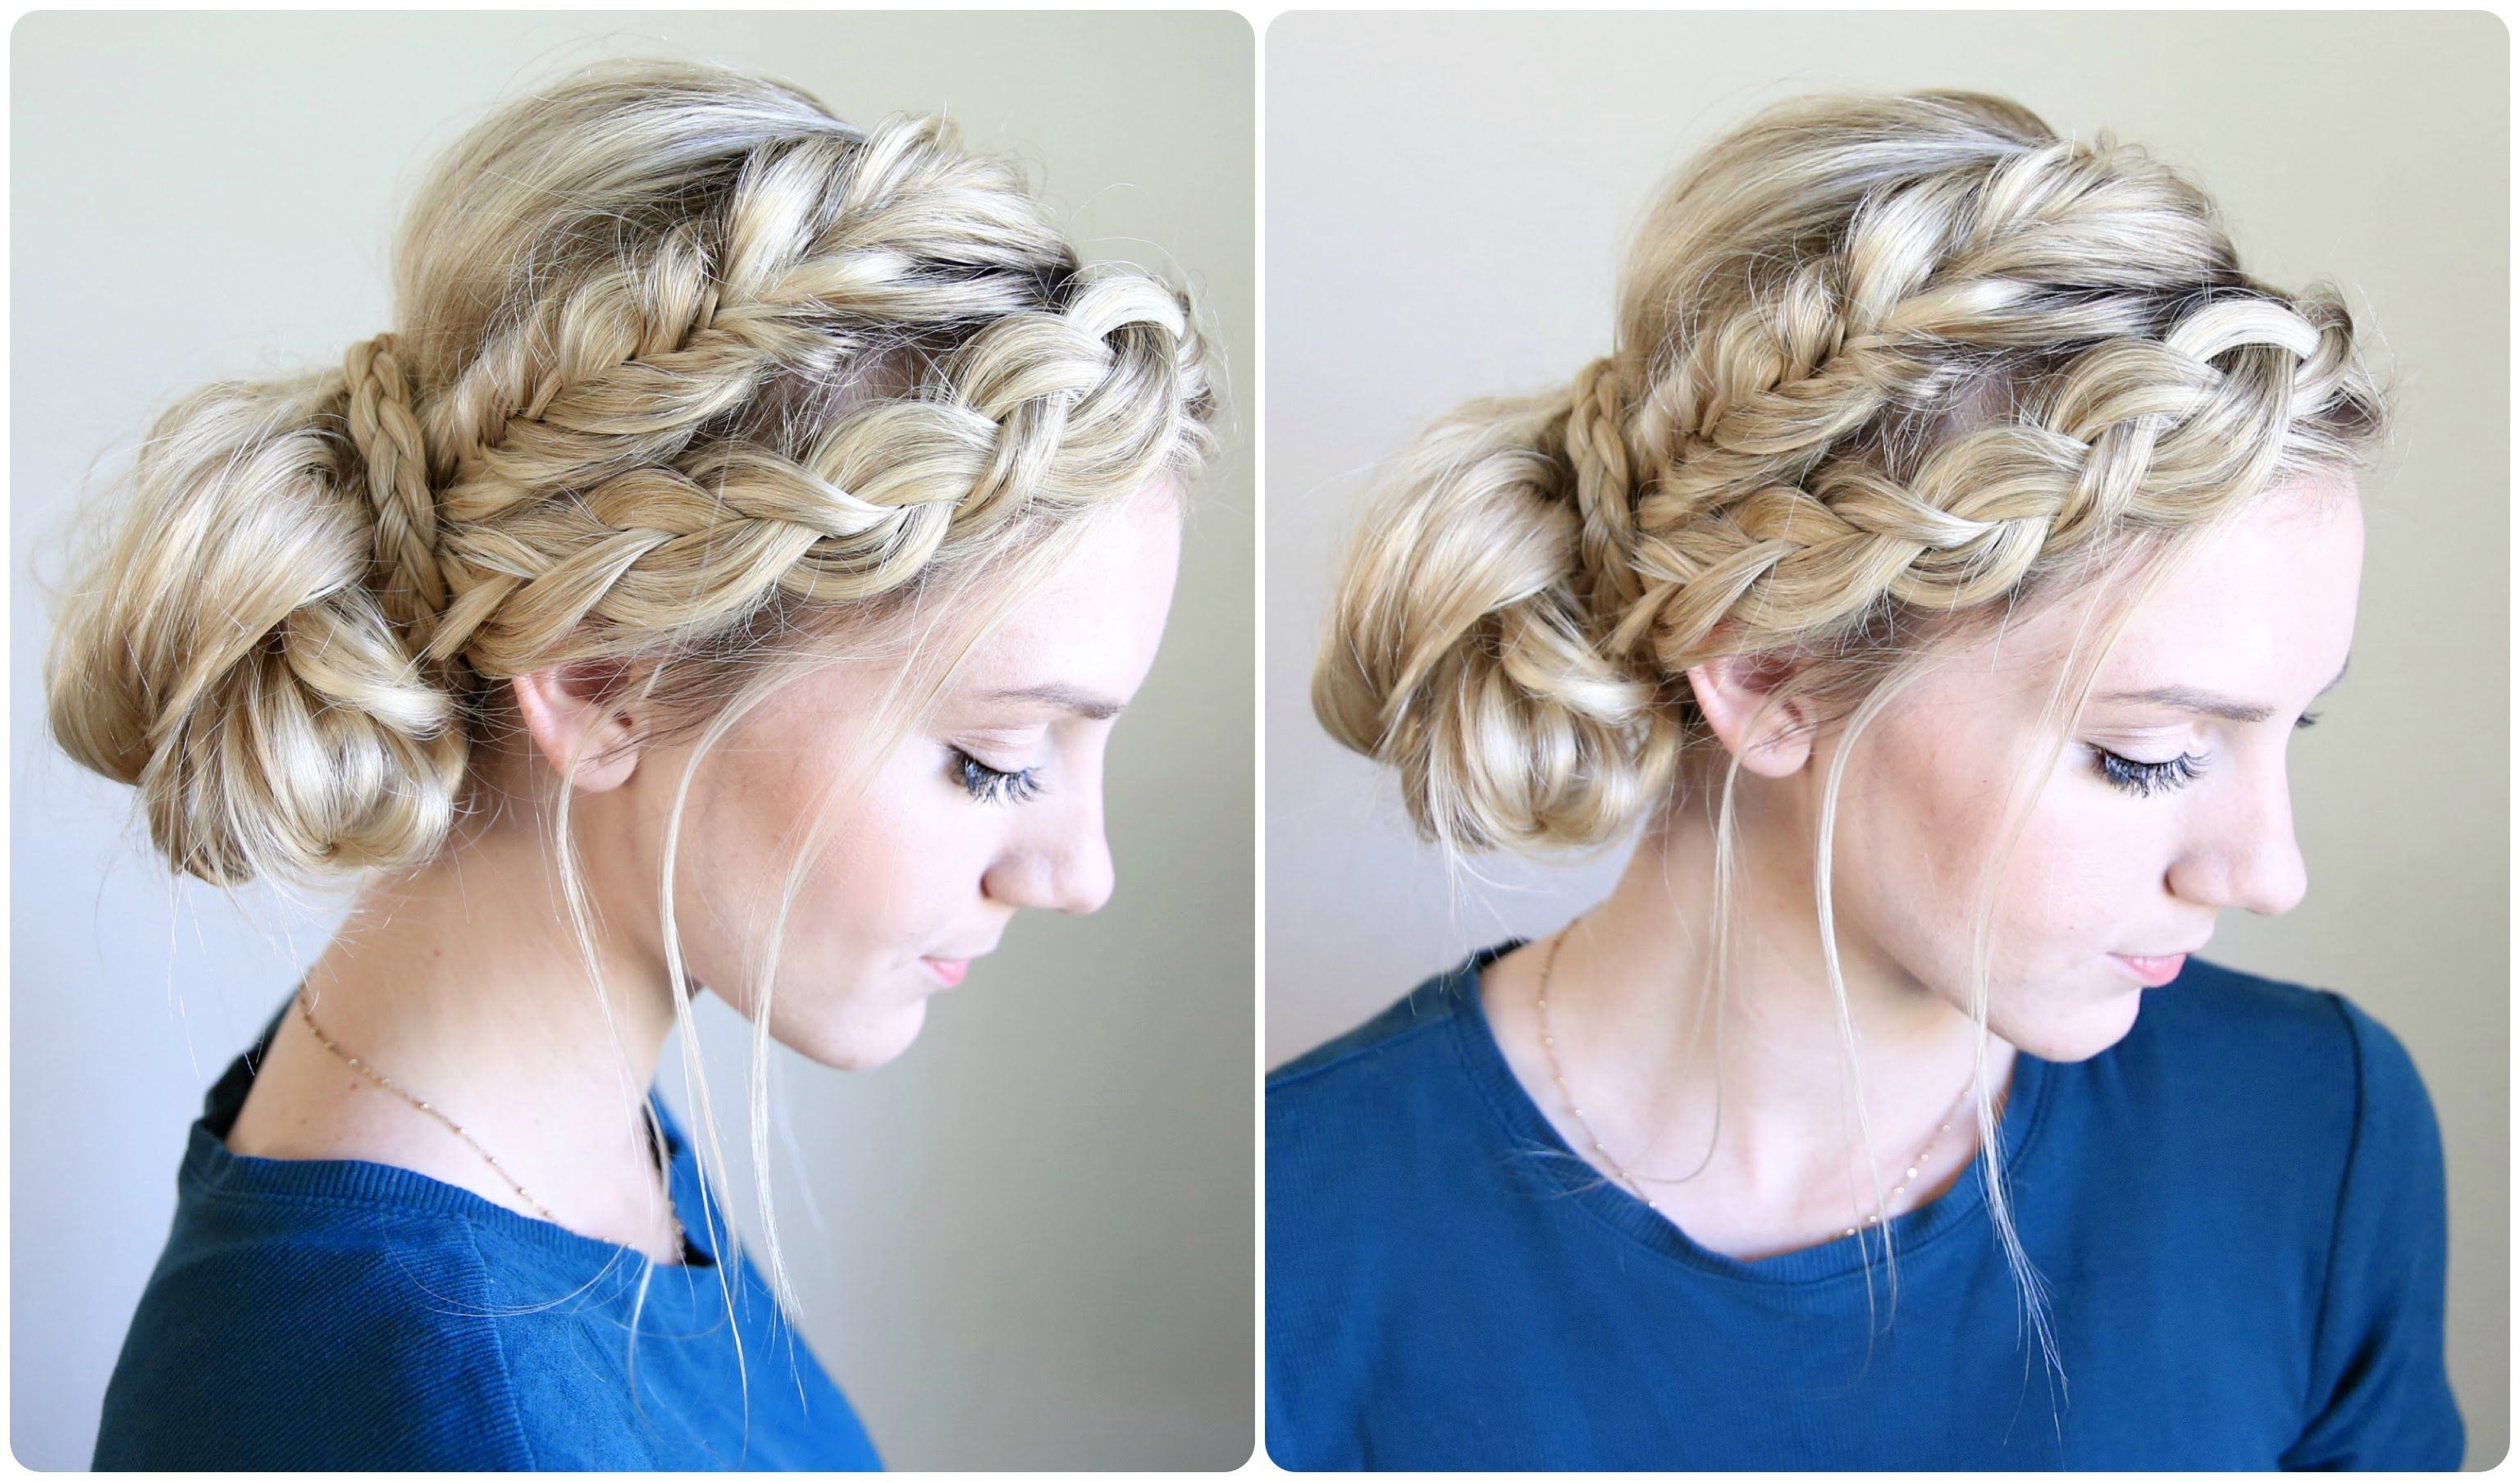 Mixed Braid Bun | Cute Girls Hairstyles | Cute Girls ...